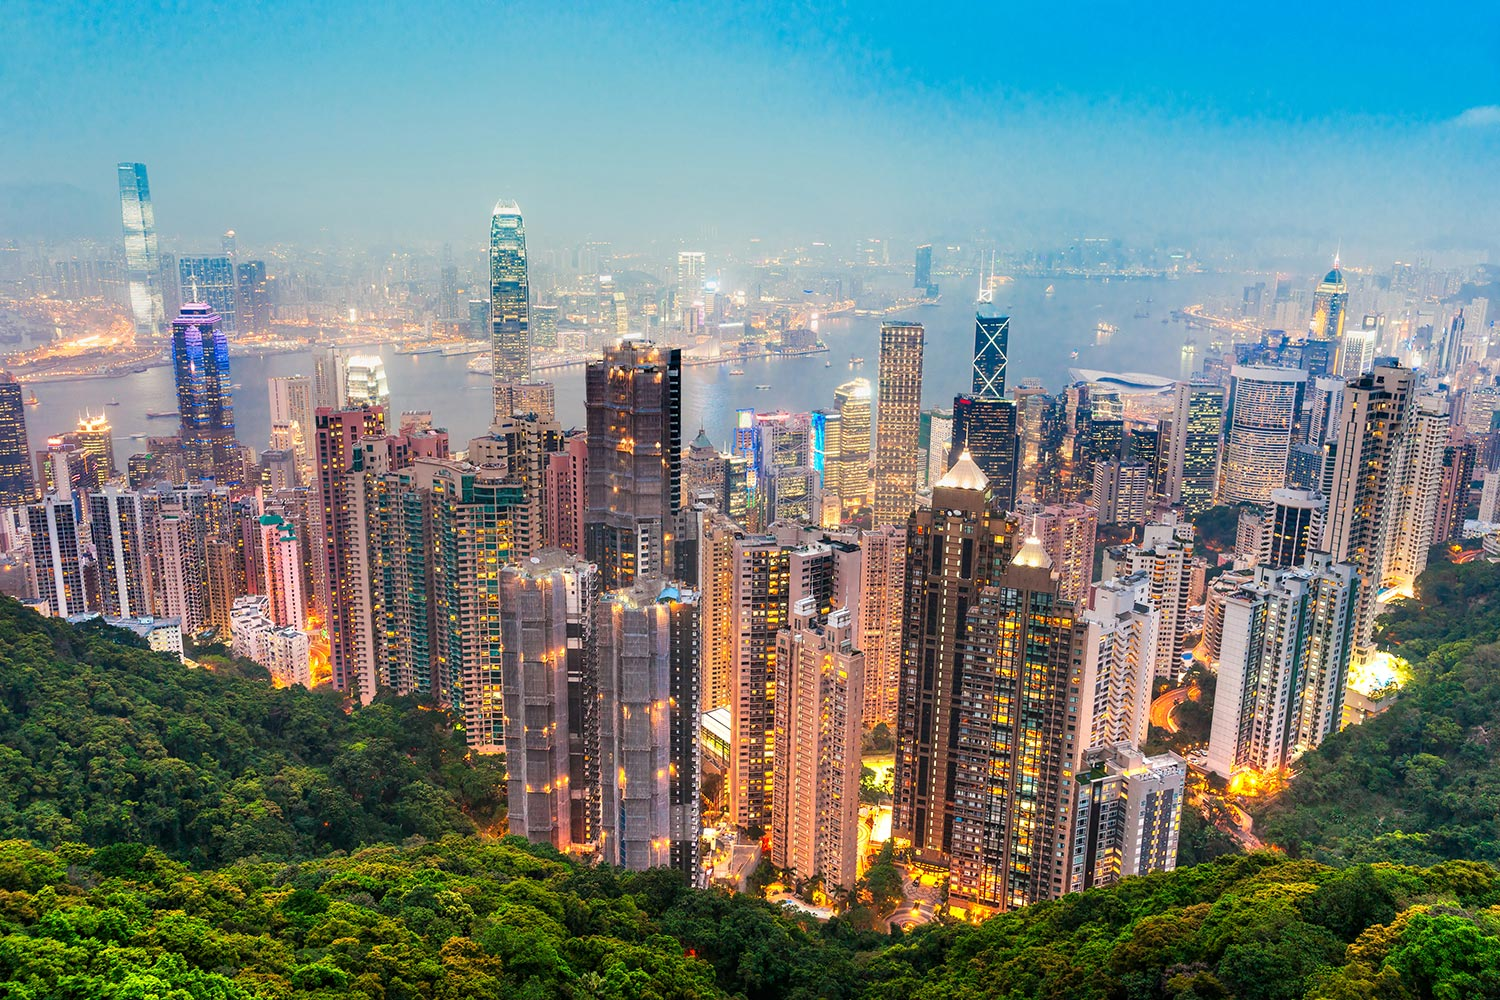 Aerial view of illuminated skyscrapers in Hong Kong